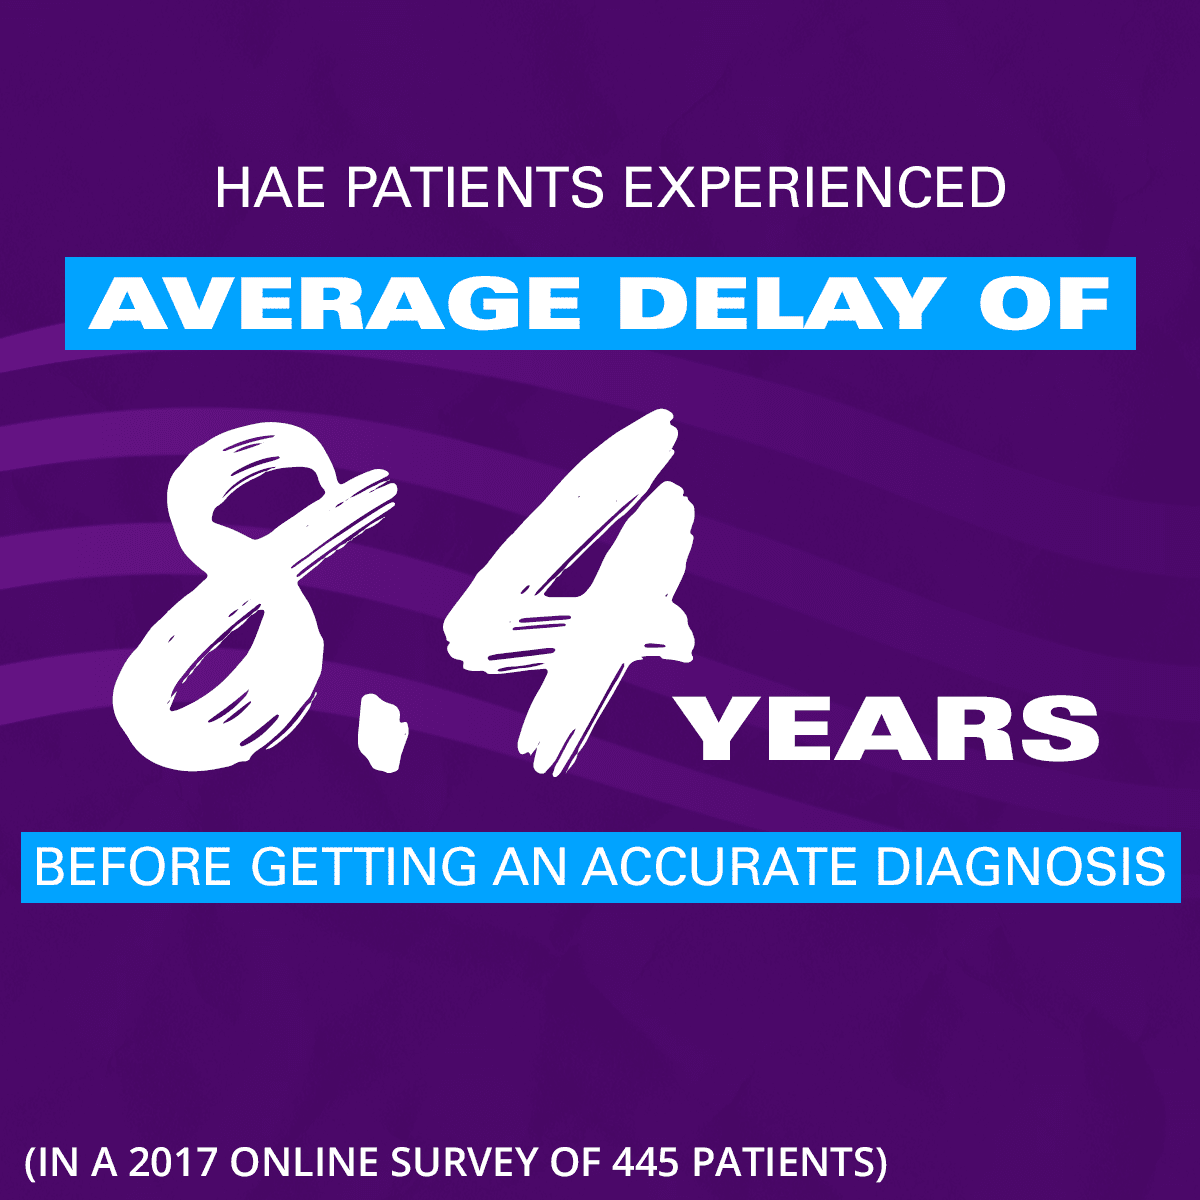 HAE patients experienced an average delay of 8.4 years before getting an accurate diagnosis.